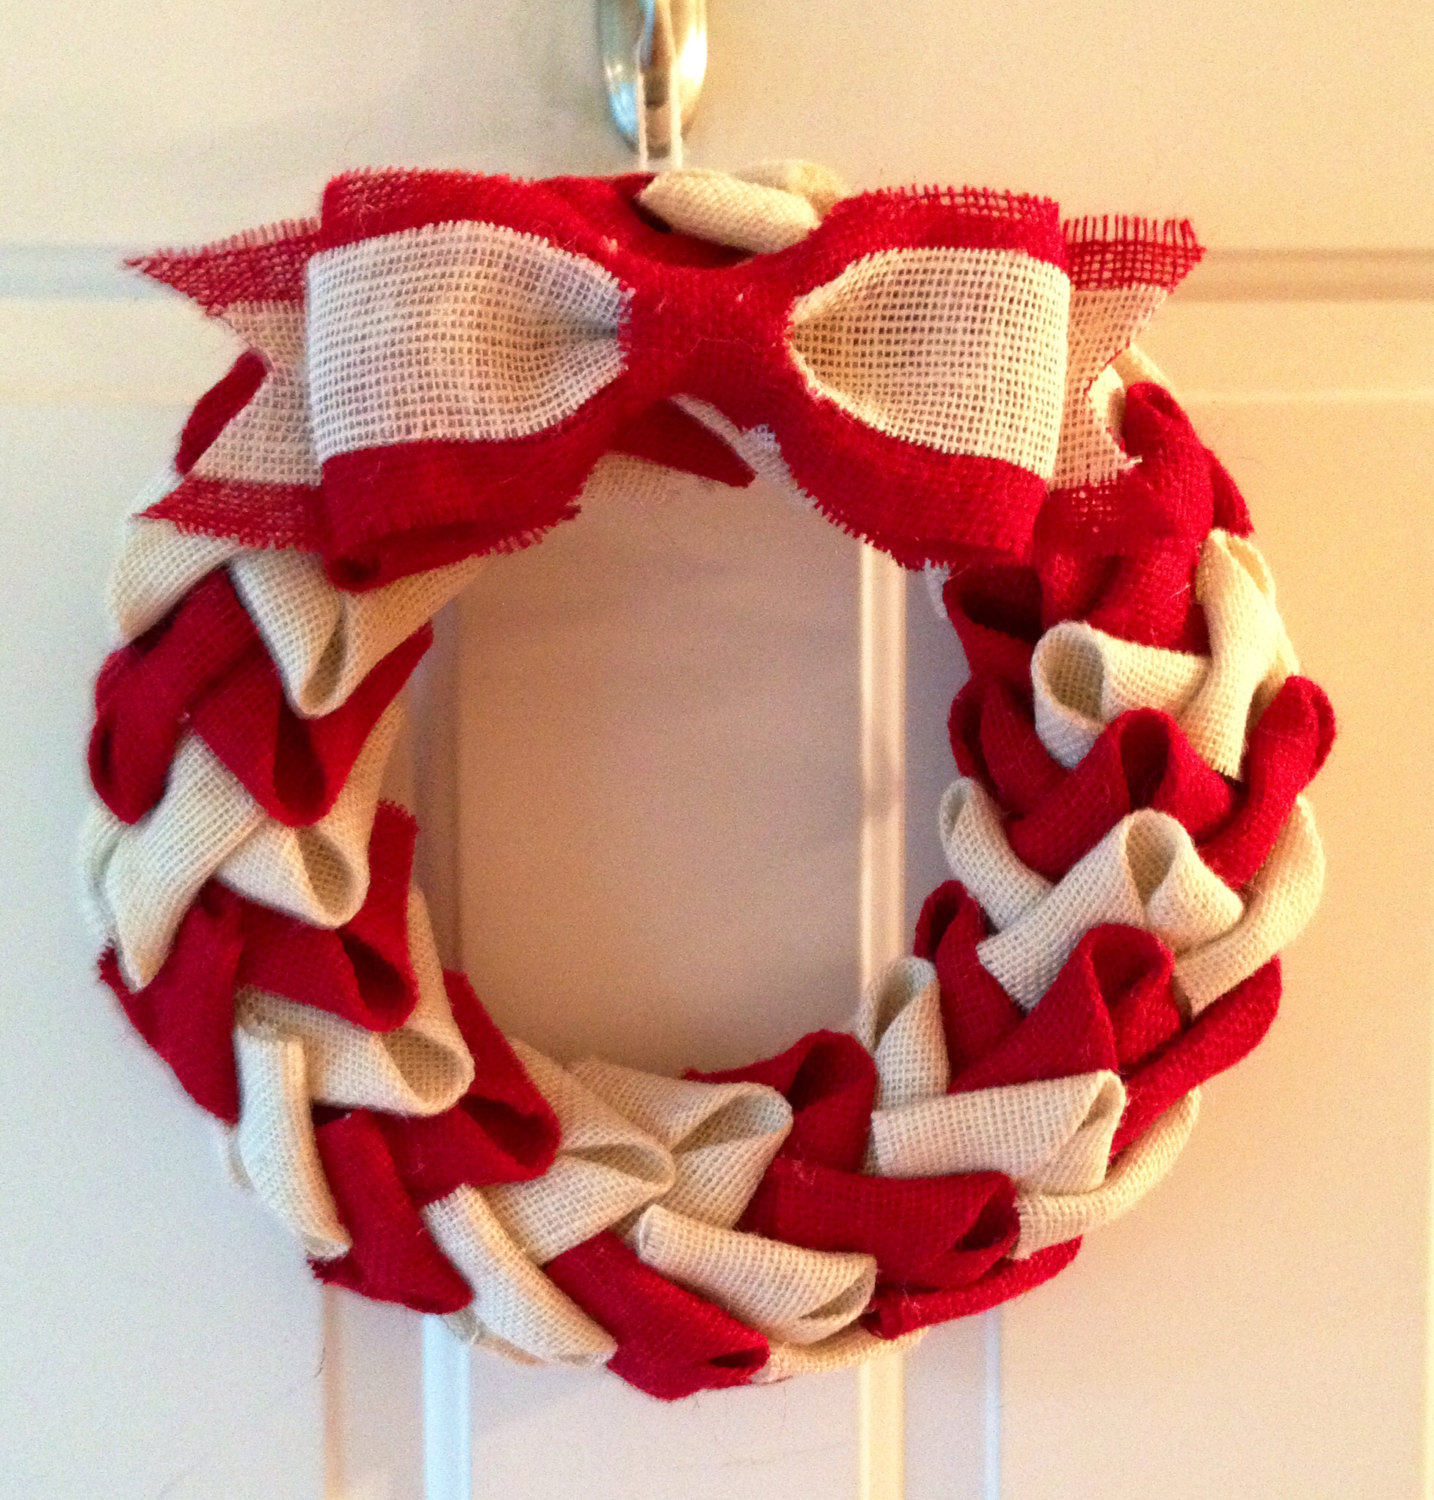 Super festive designs will make any door sparkle best home design ideas - Awesome christmas wreath with homemade style ...